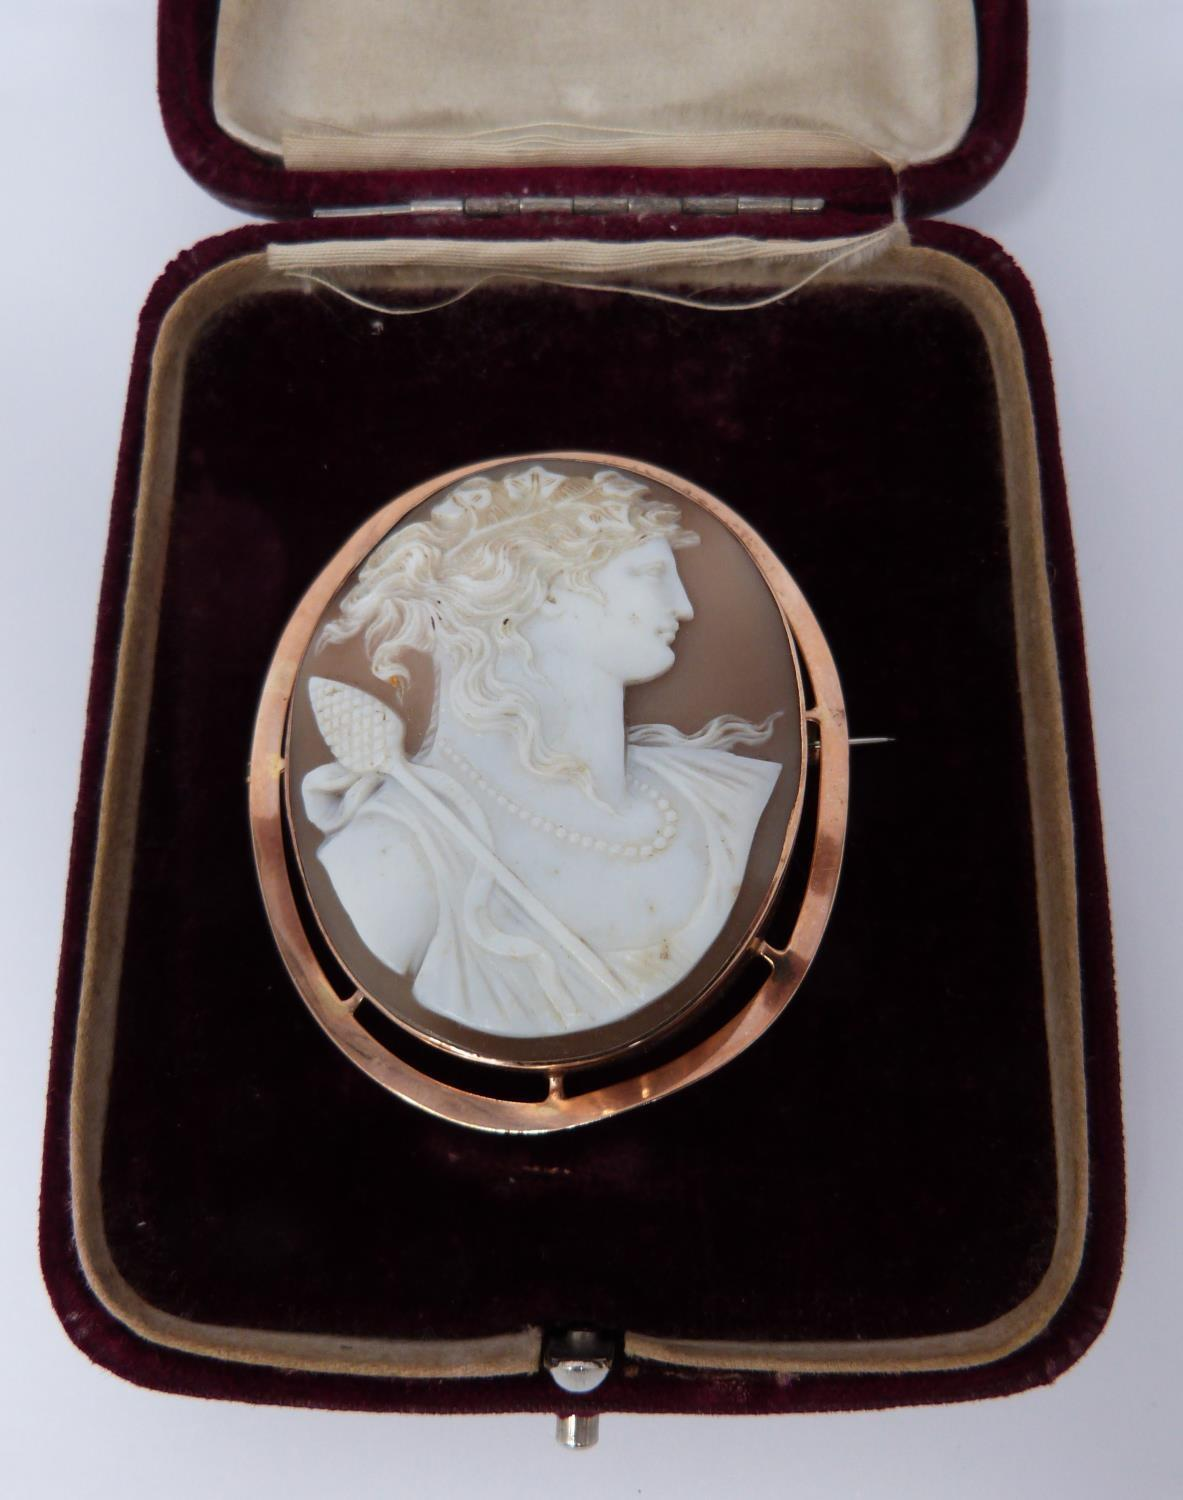 A 9ct Rose gold shell cameo of Dionysis side profile, makers mark AW, 9ct gold mark, he is - Image 3 of 8